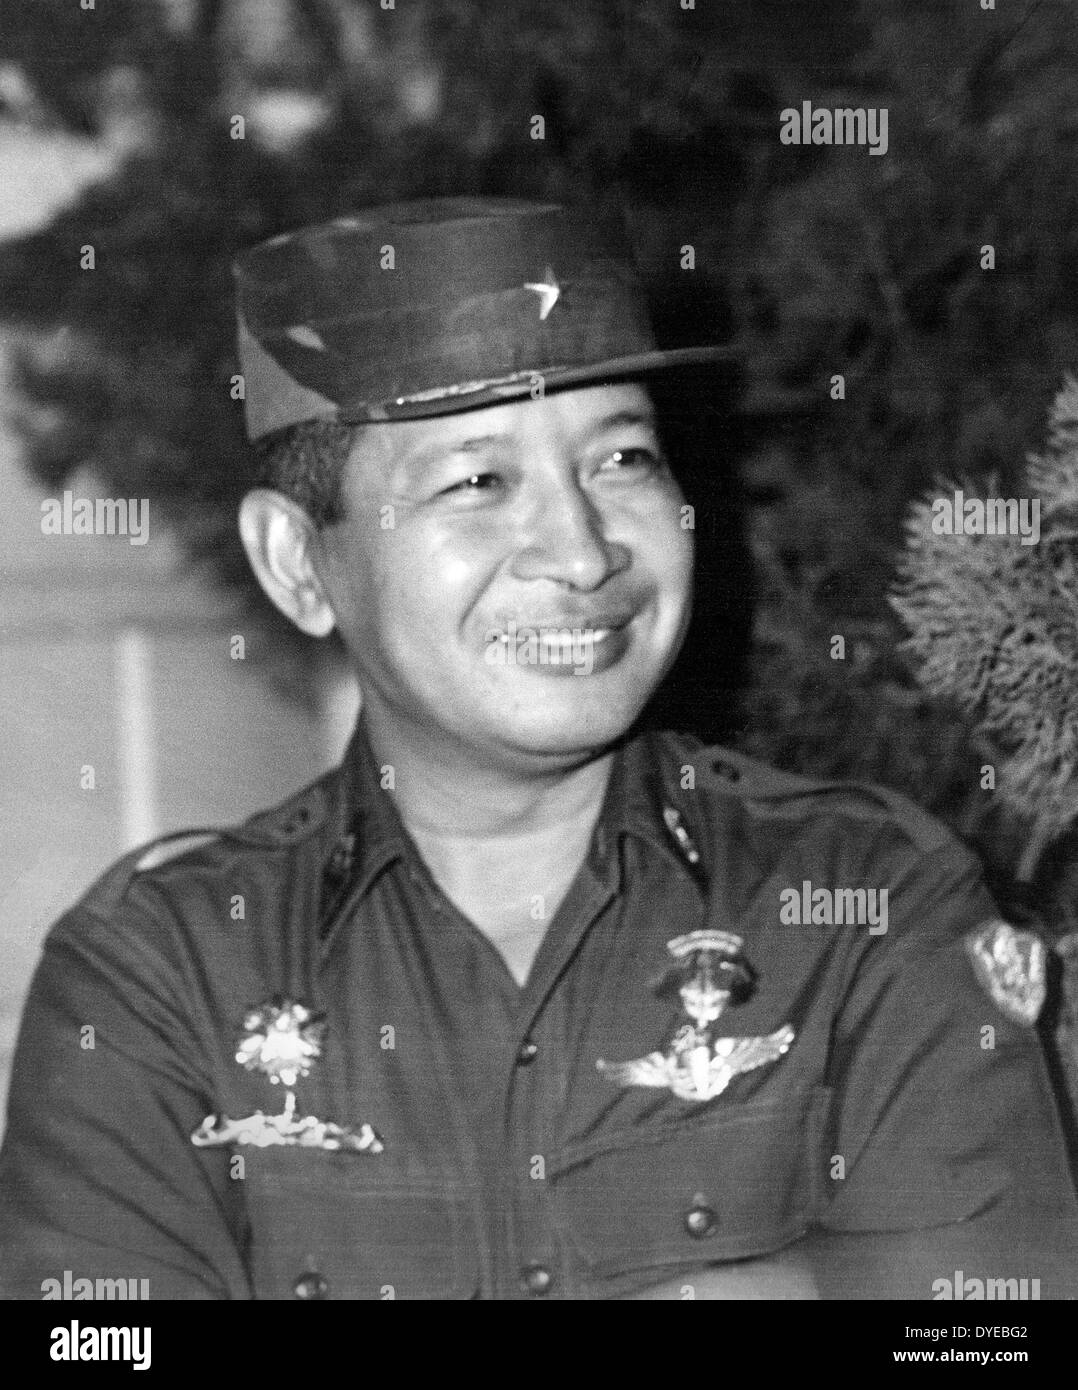 General Suharto 1921 – 2008 was the second President of Indonesia for 31 years from 1967 following Sukarno's removal until his - Stock Image